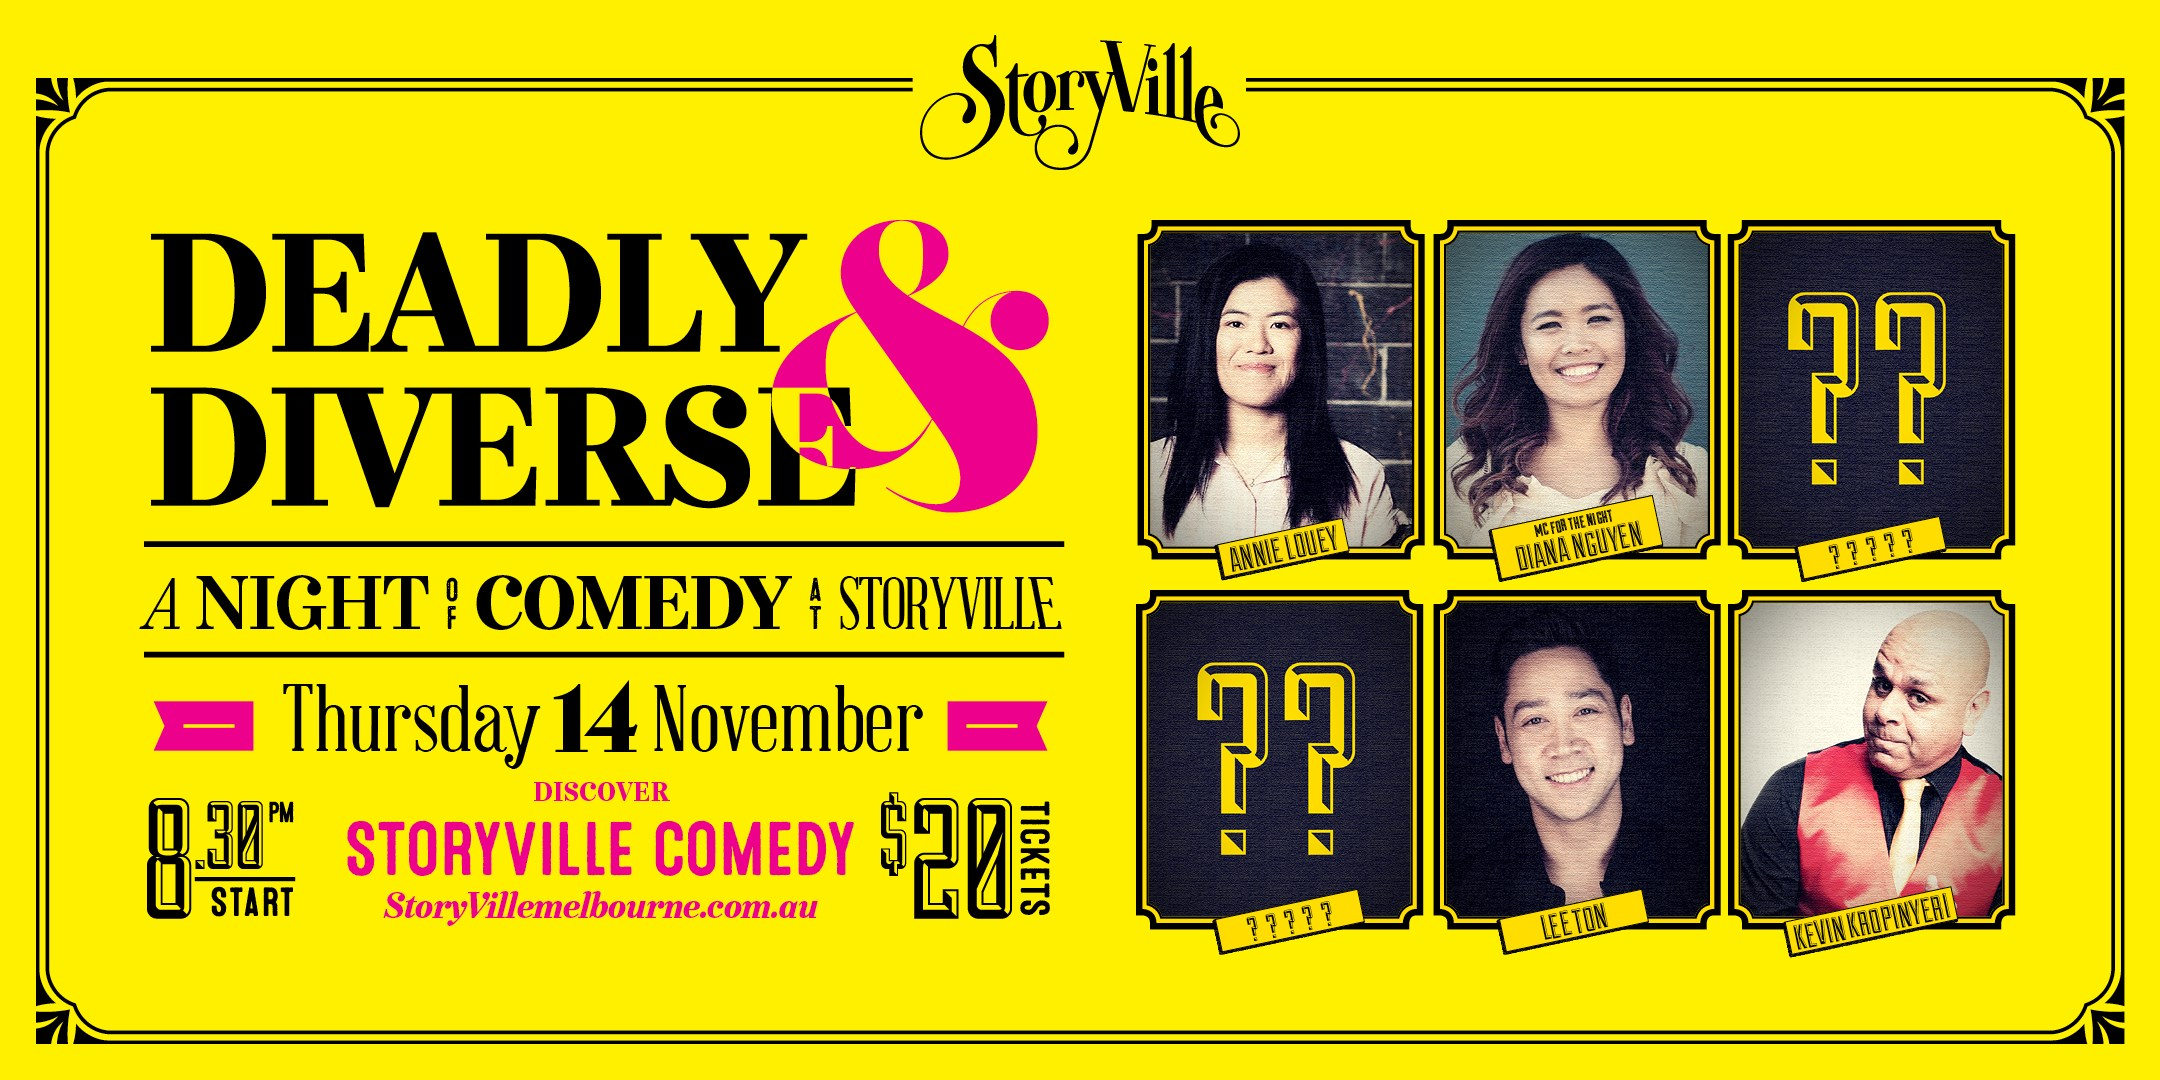 Deadly and Diverse Comedy Night.